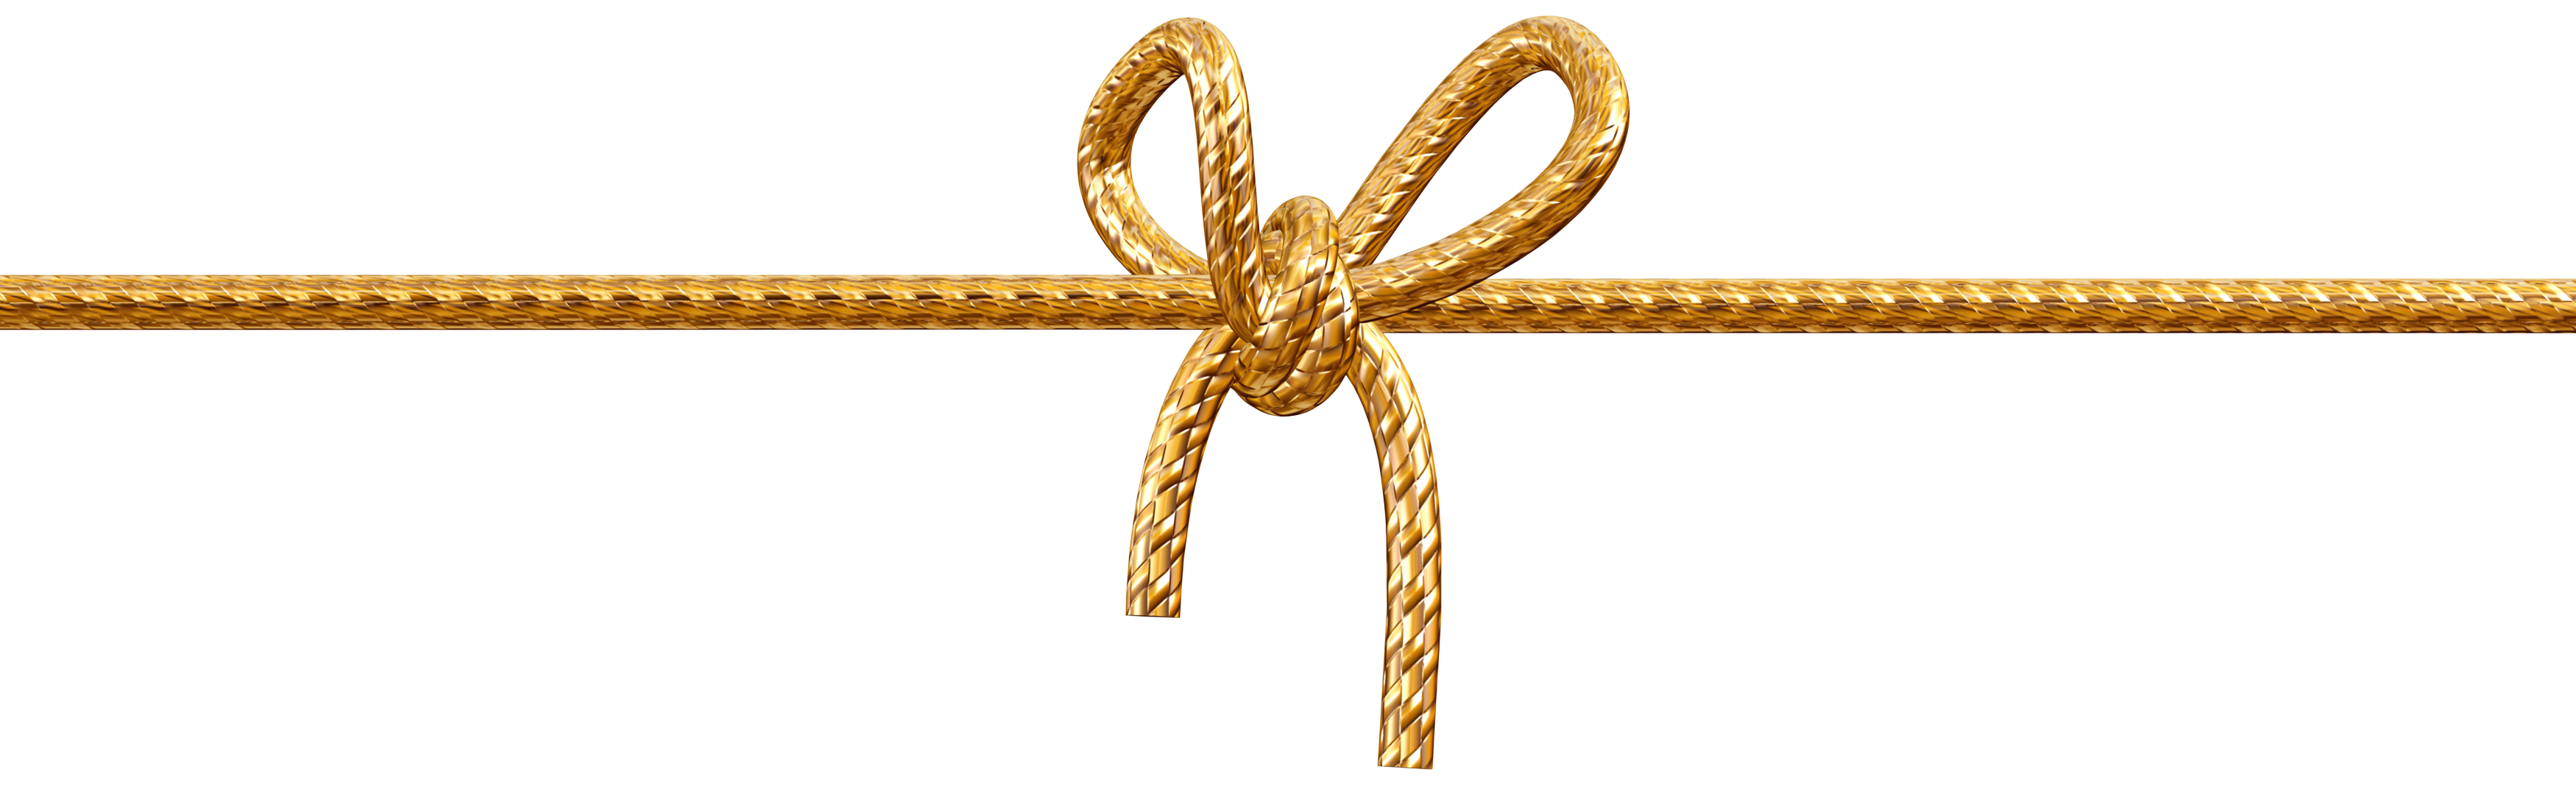 Nautical Rope Knot Png - Rope Knot Transparent & PNG Clipart Free Download - YWD